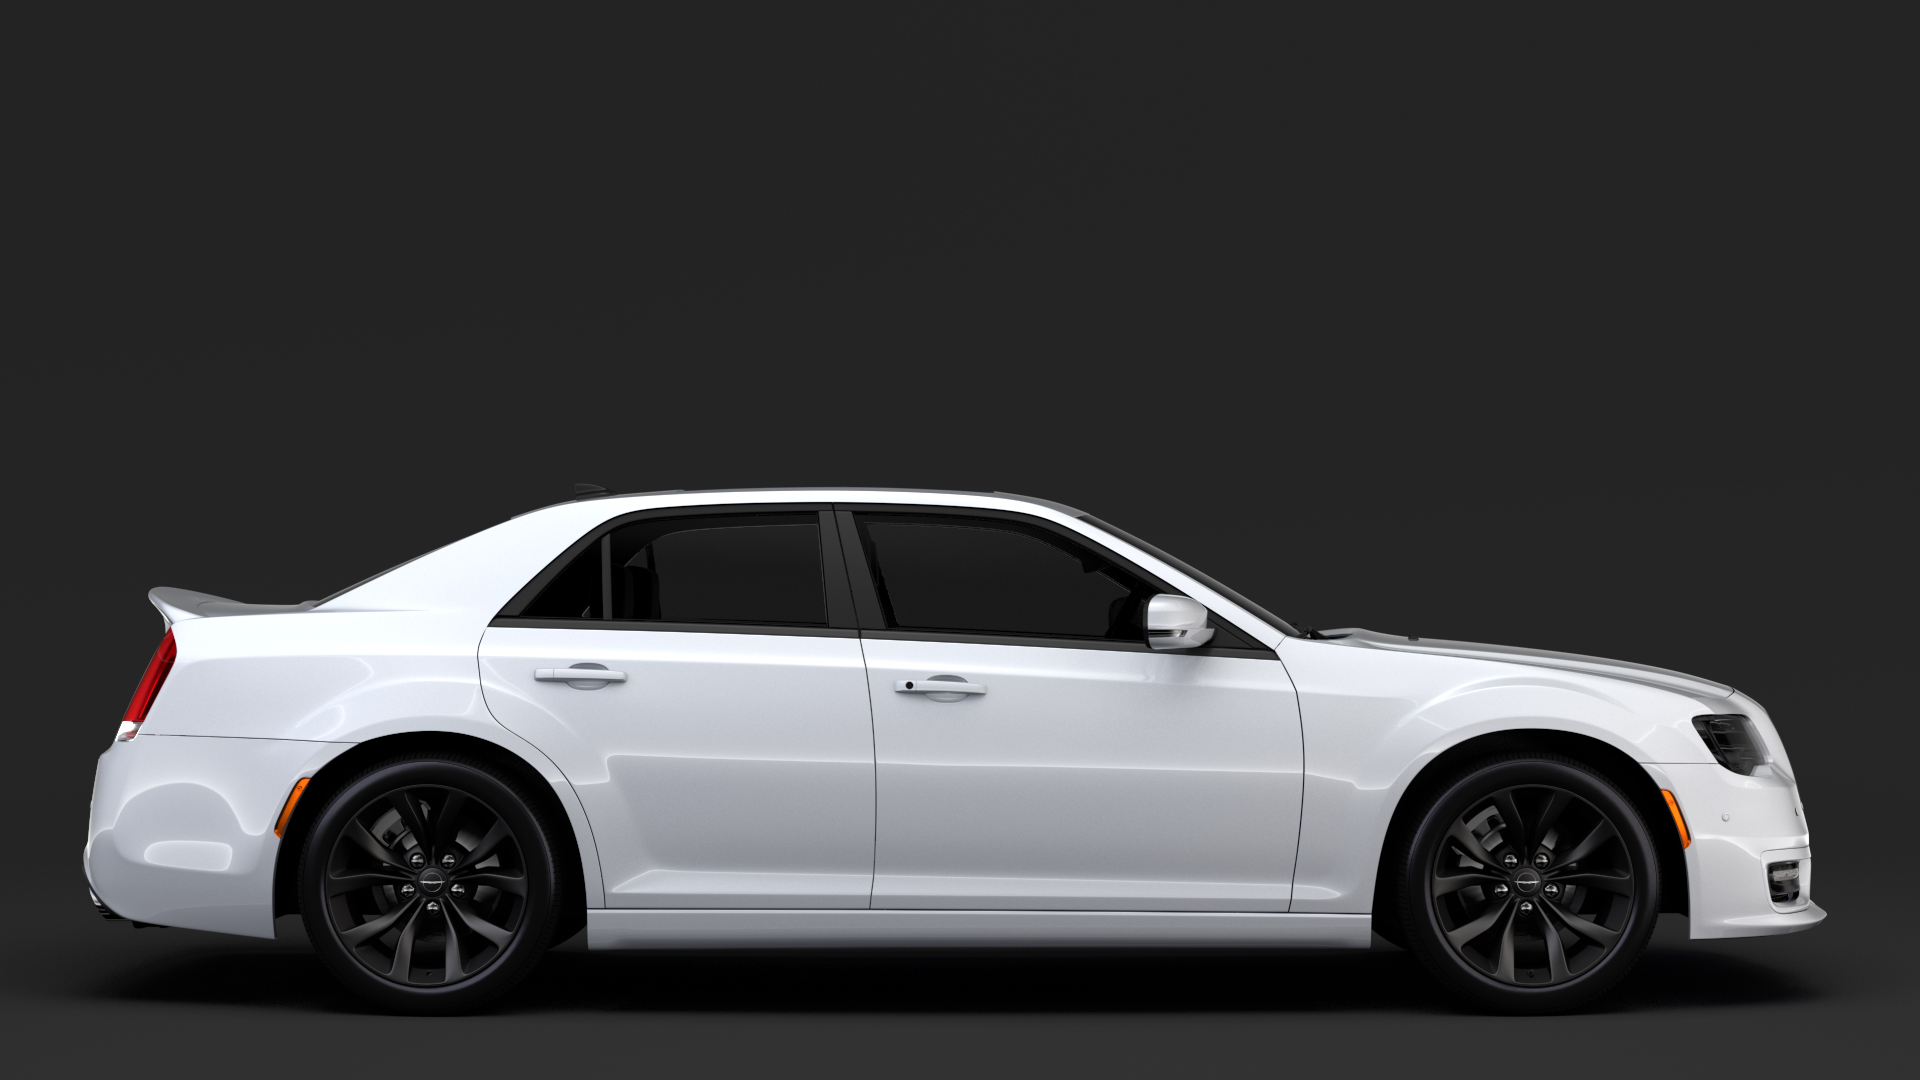 chrysler 300 srt lx2 2018 3d model 3ds max fbx c4d lwo ma mb hrc xsi obj 286100